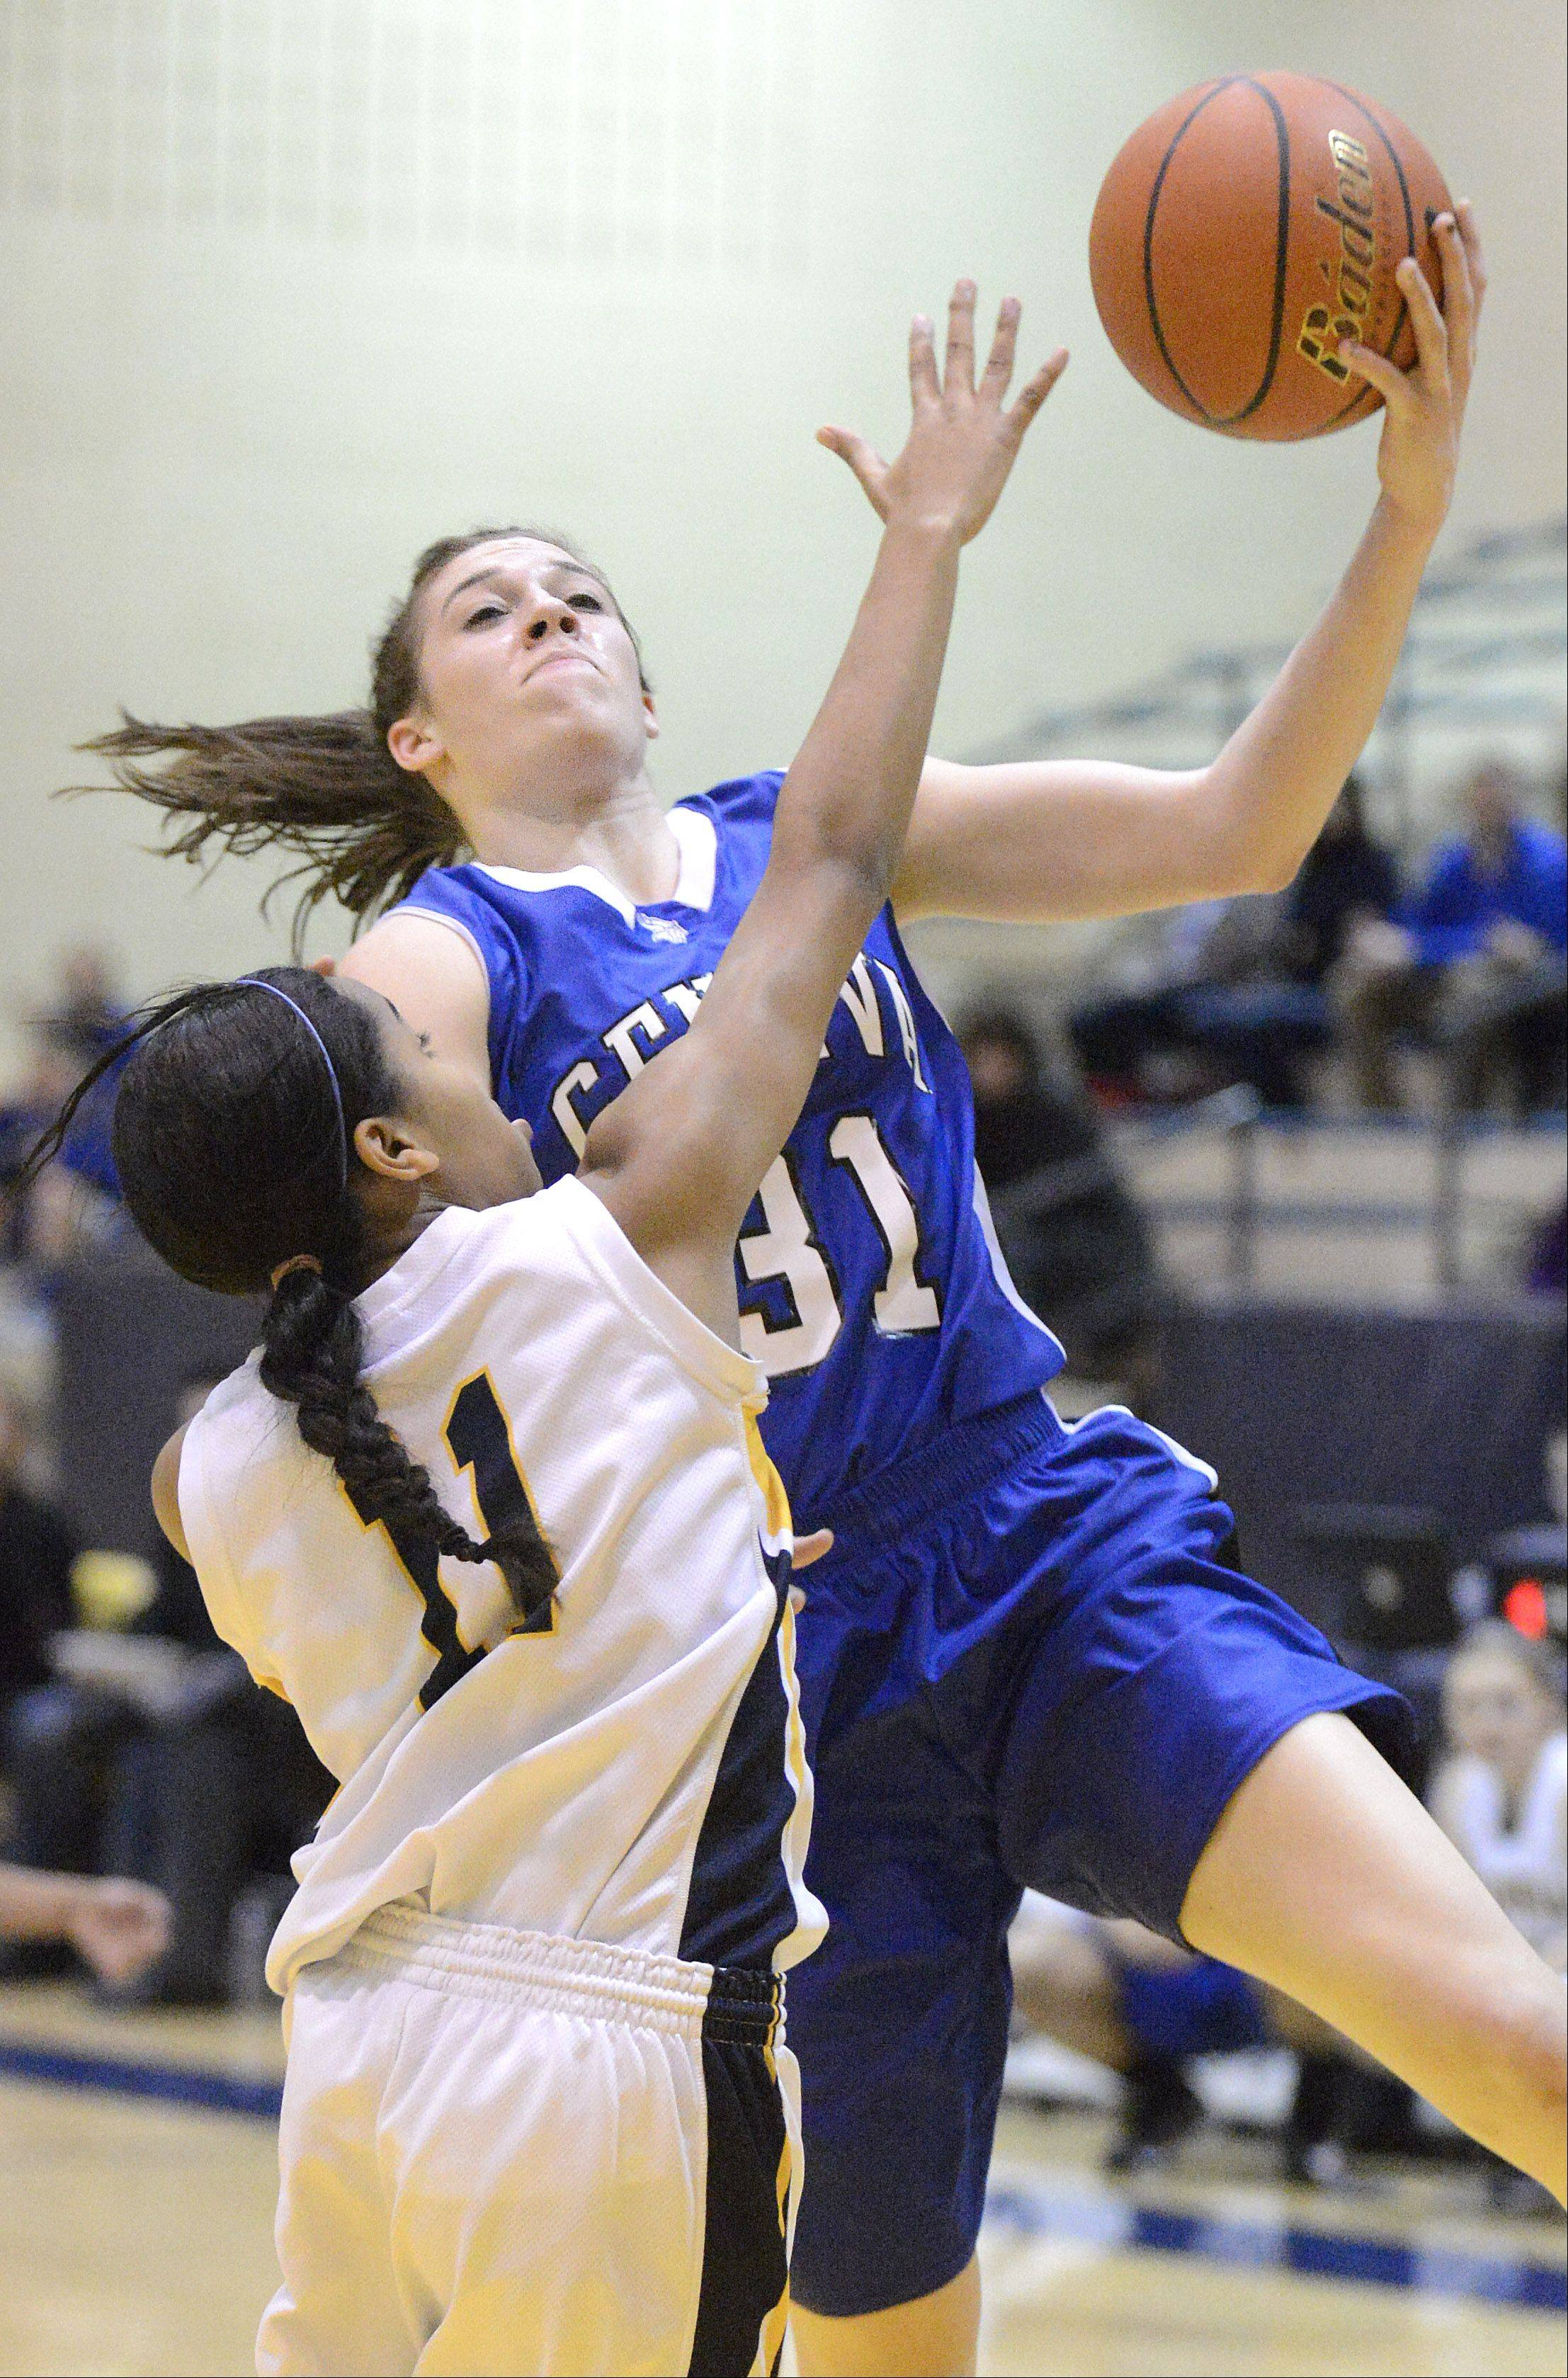 Neuqua Valley's Kai Moon attempts to block a shot by Geneva's Sami Pawlak in the first quarter.